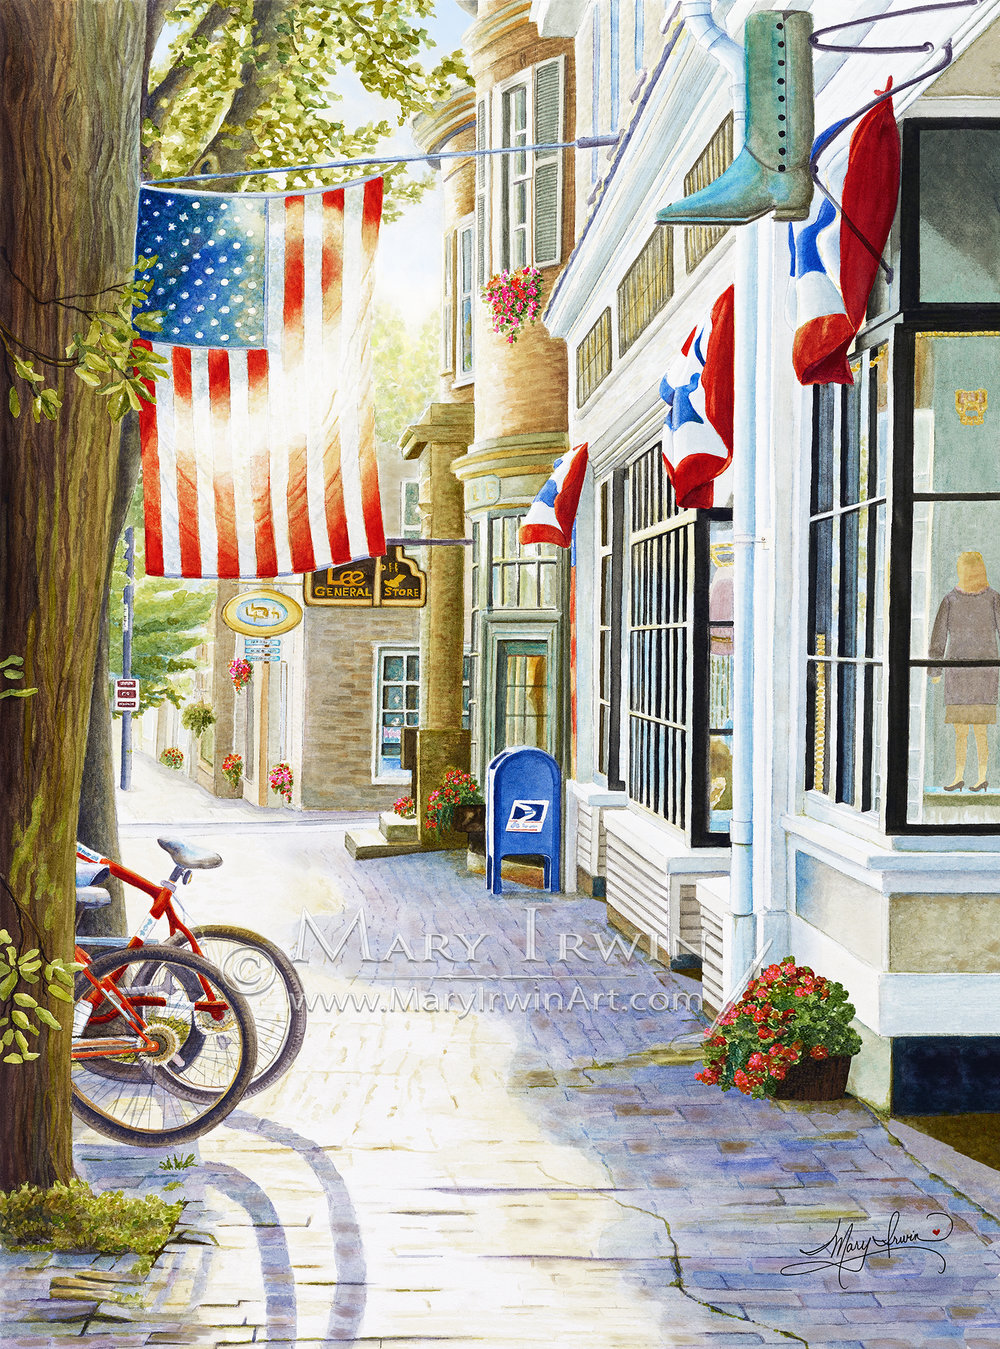 Old Town, USA  by Mary Irwin